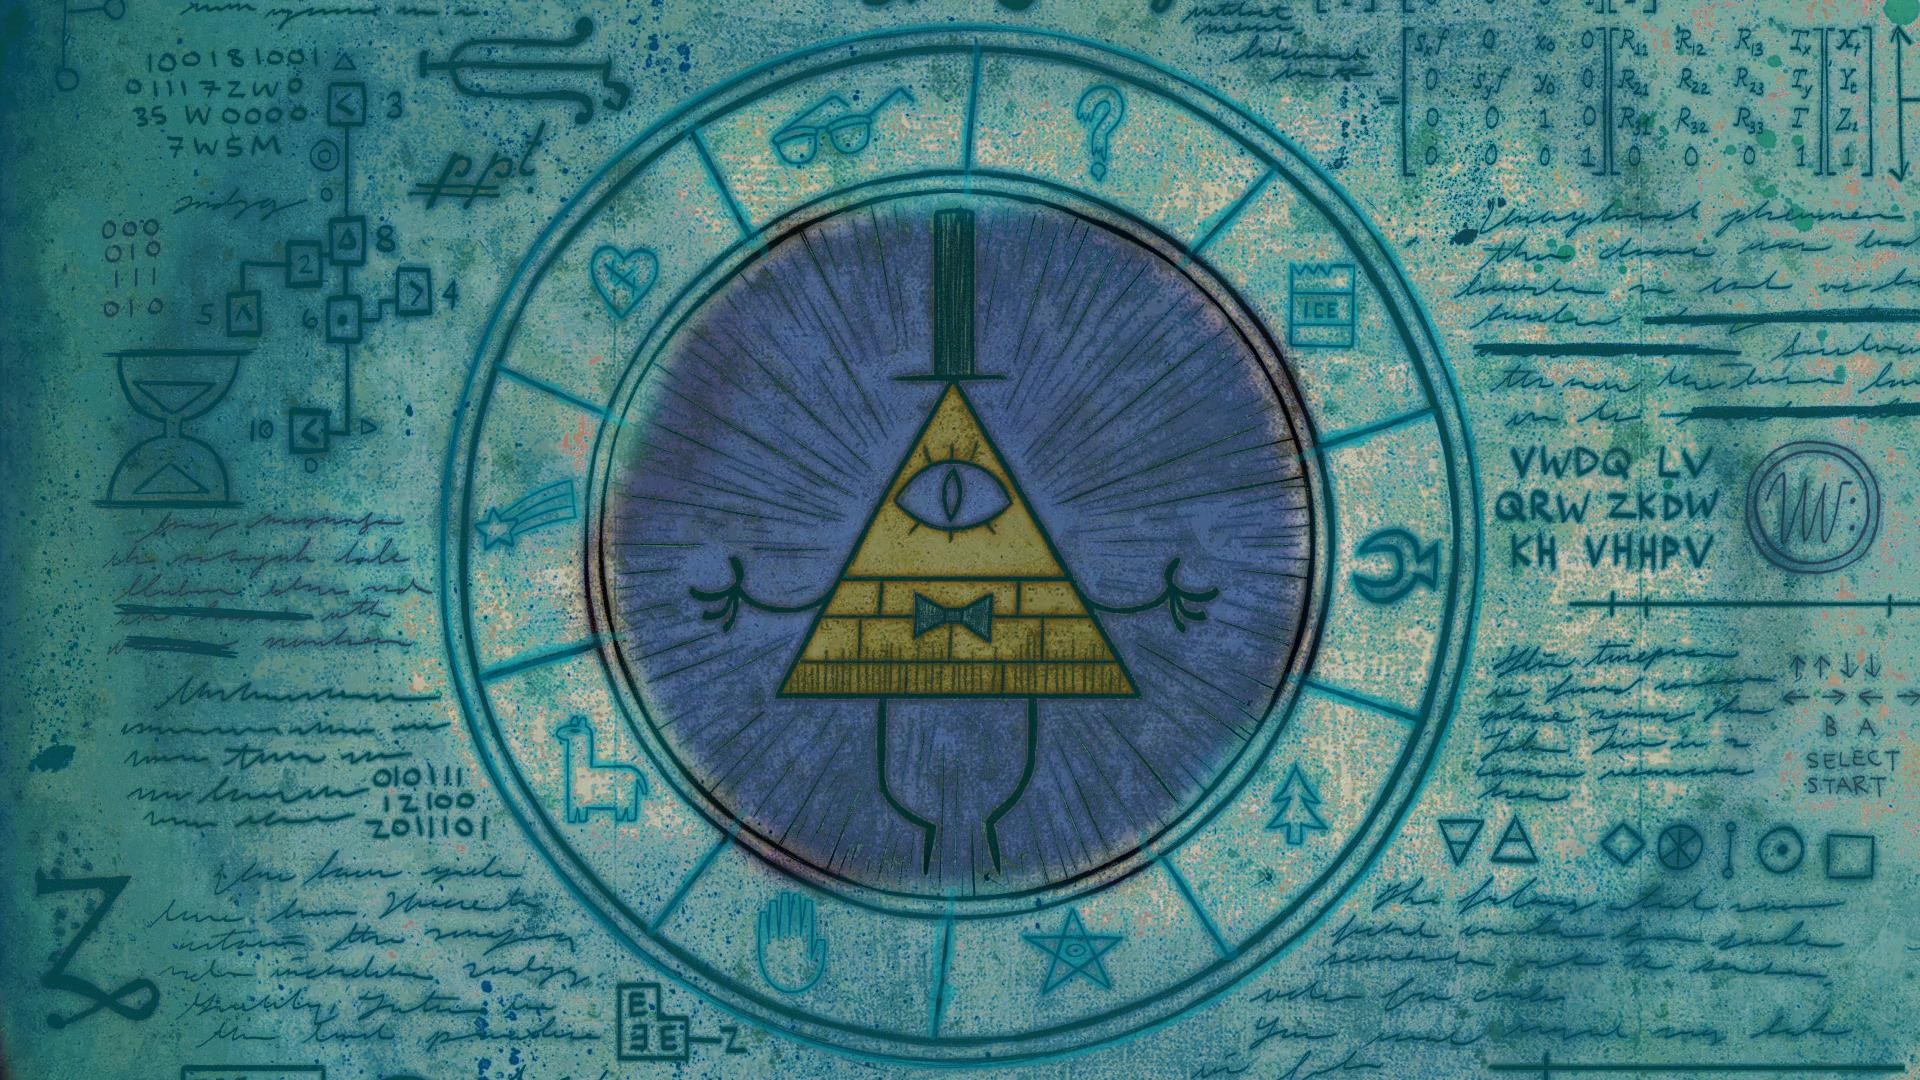 Gravity Falls Wallpaper Ipad Bill Cipher Wallpaper 183 ① Download Free Awesome Full Hd